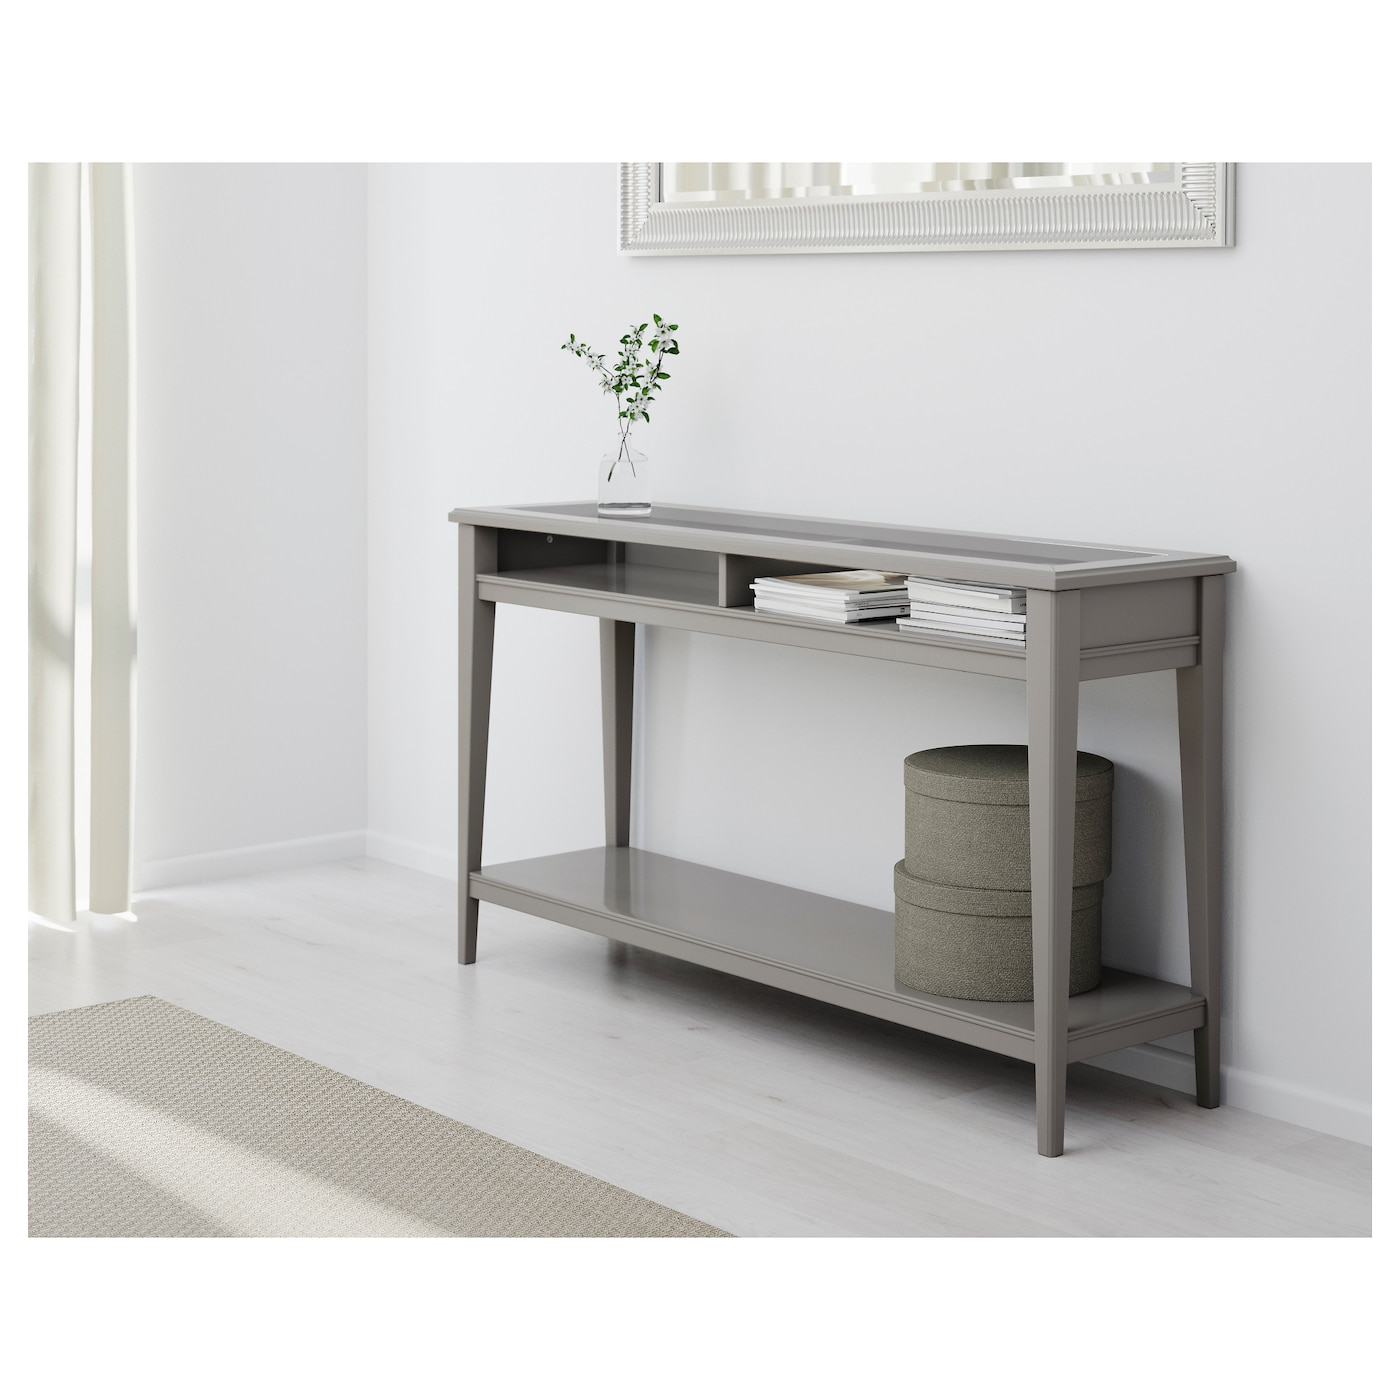 liatorp console table grey glass 133 x 37 cm ikea. Black Bedroom Furniture Sets. Home Design Ideas